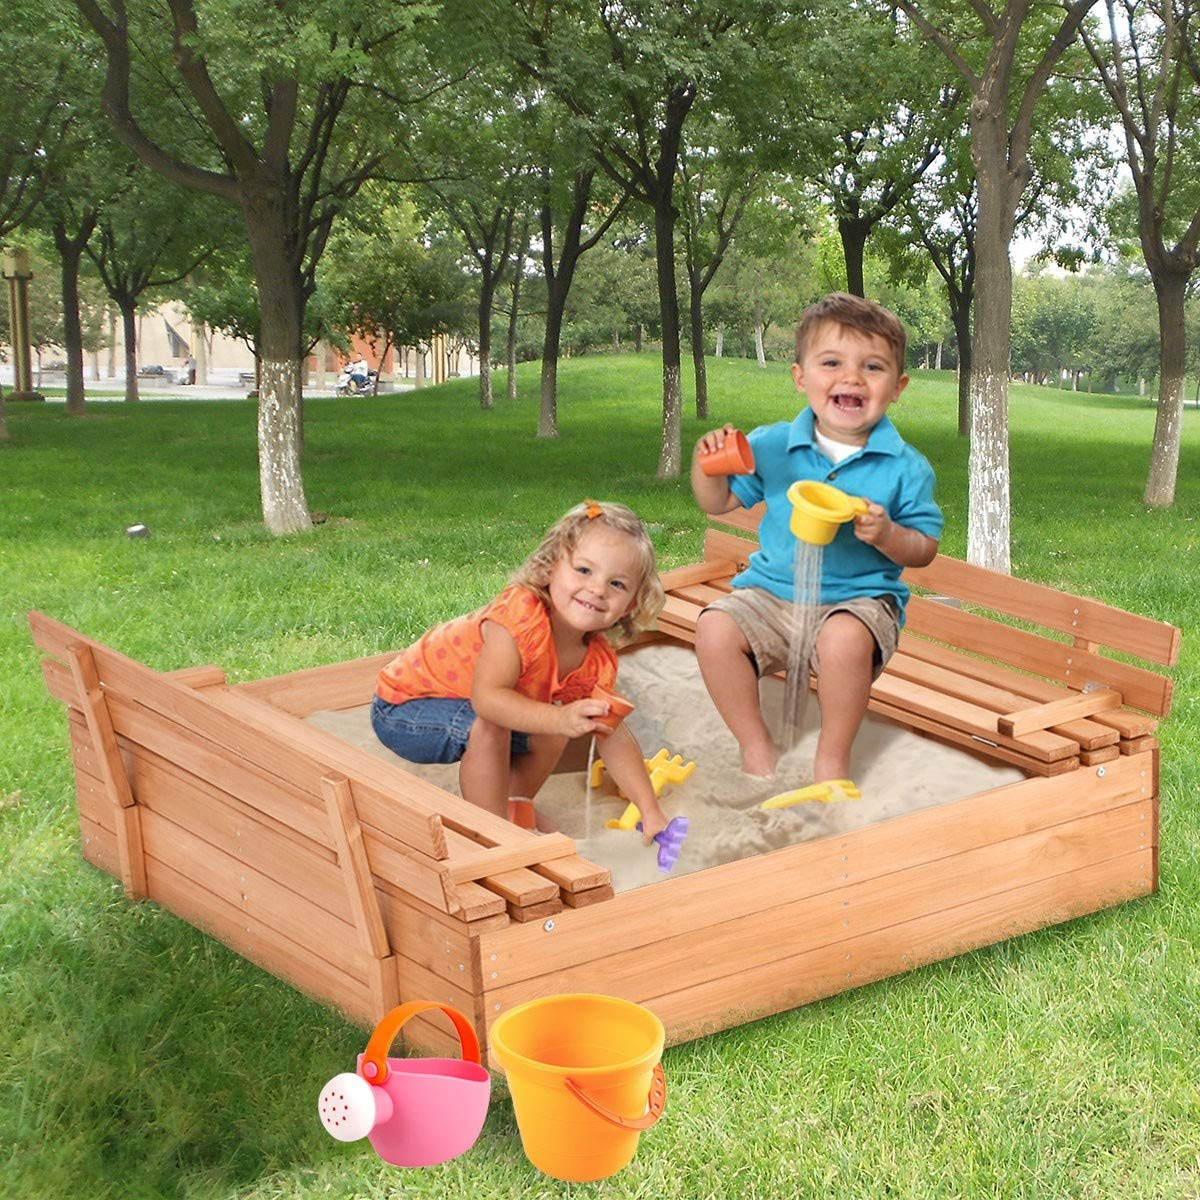 USA_BEST_SELLER Children Outdoor Foldable Retractable Sandbox Bench Seat Box by USA_BEST_SELLER (Image #3)